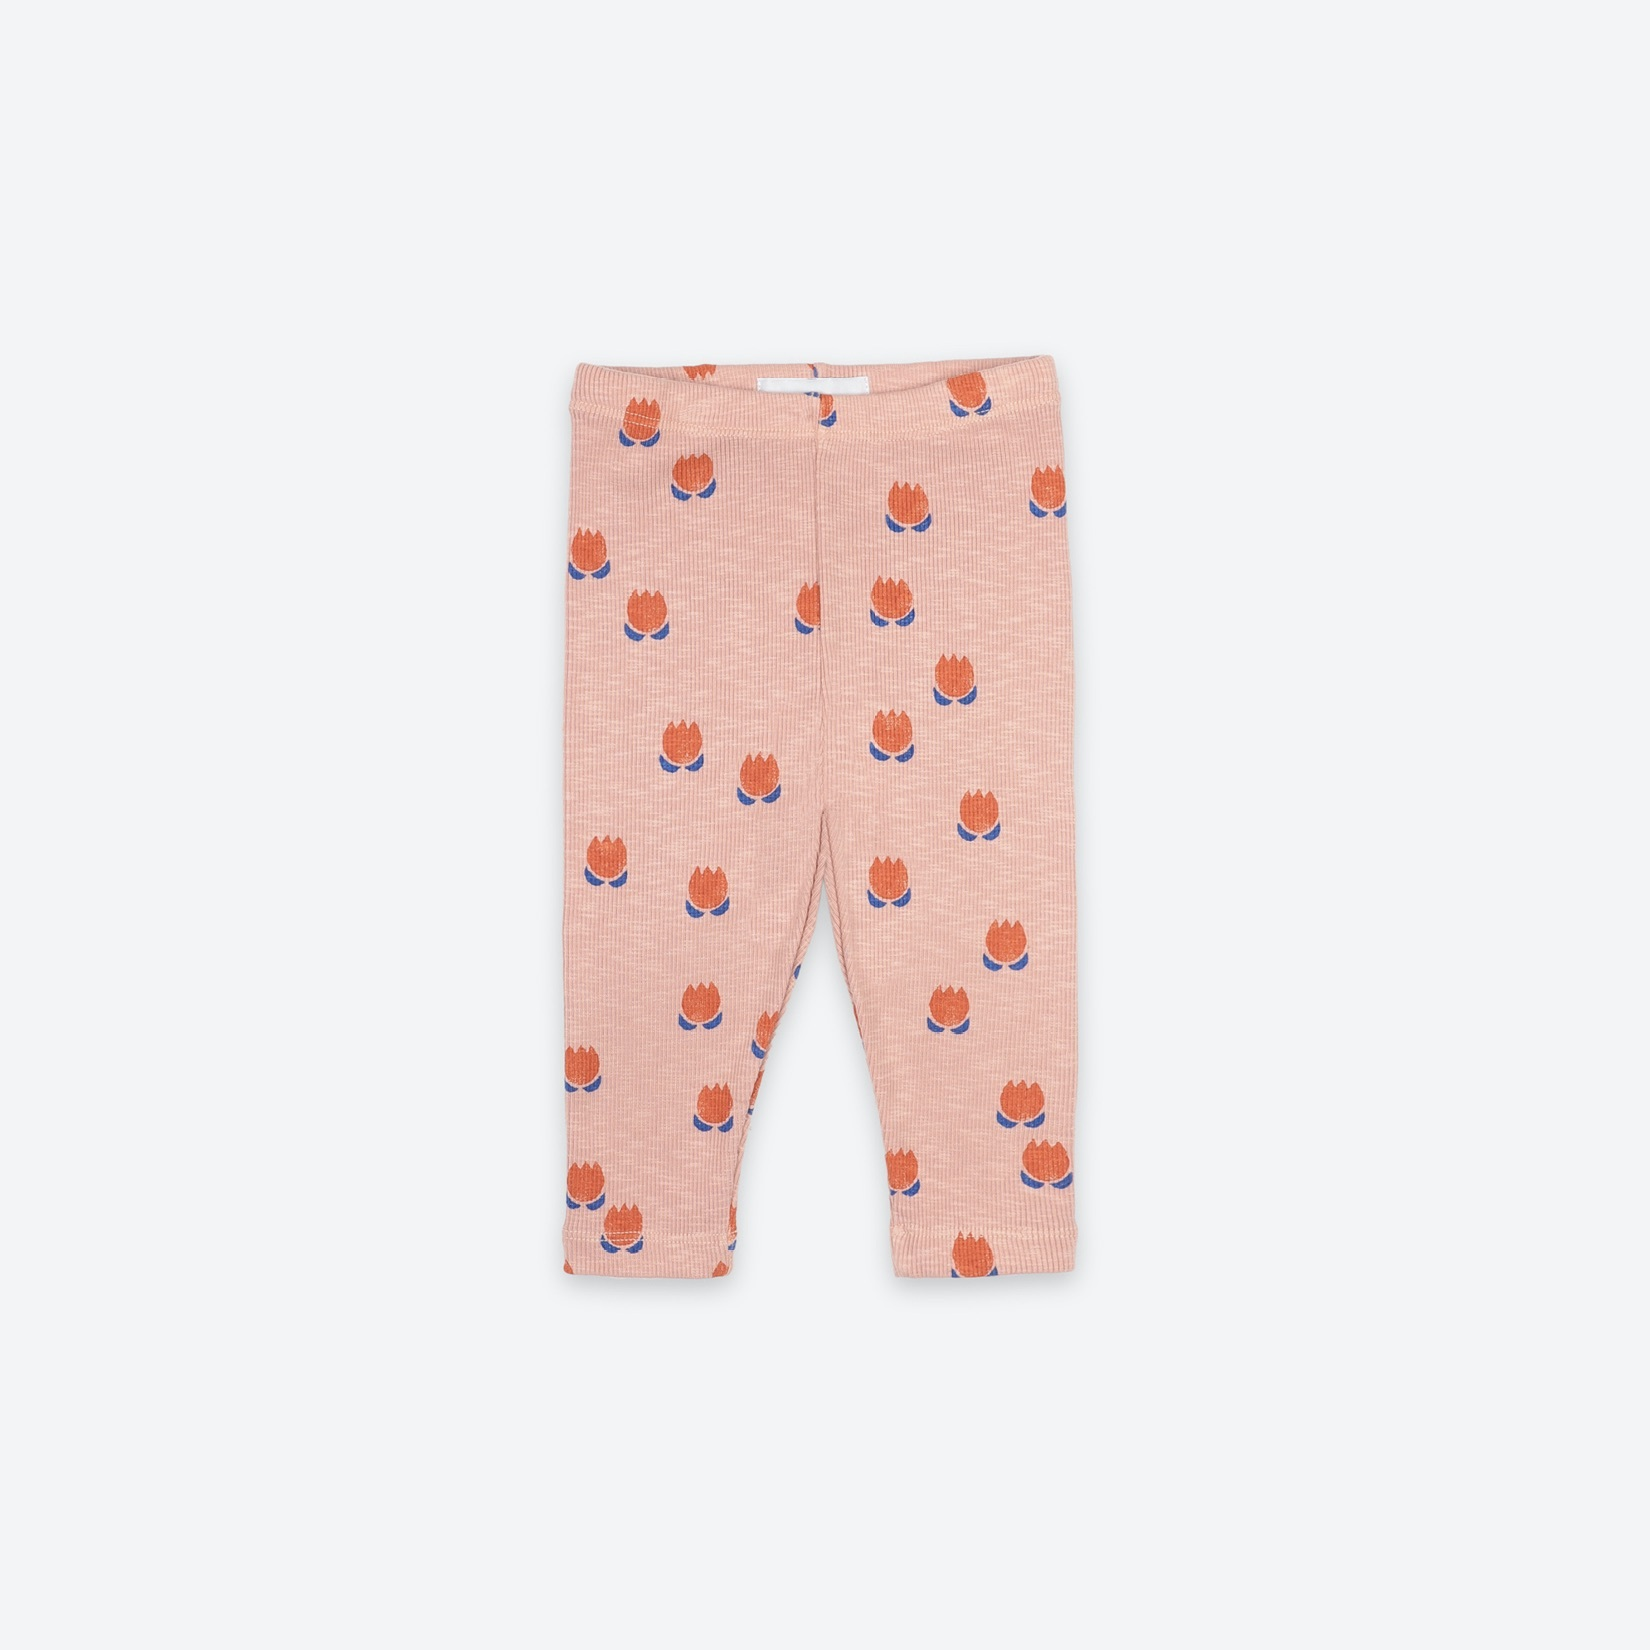 《BOBO CHOSES 2021SS》Chocolate Flowers All Over Leggings / 6-36M